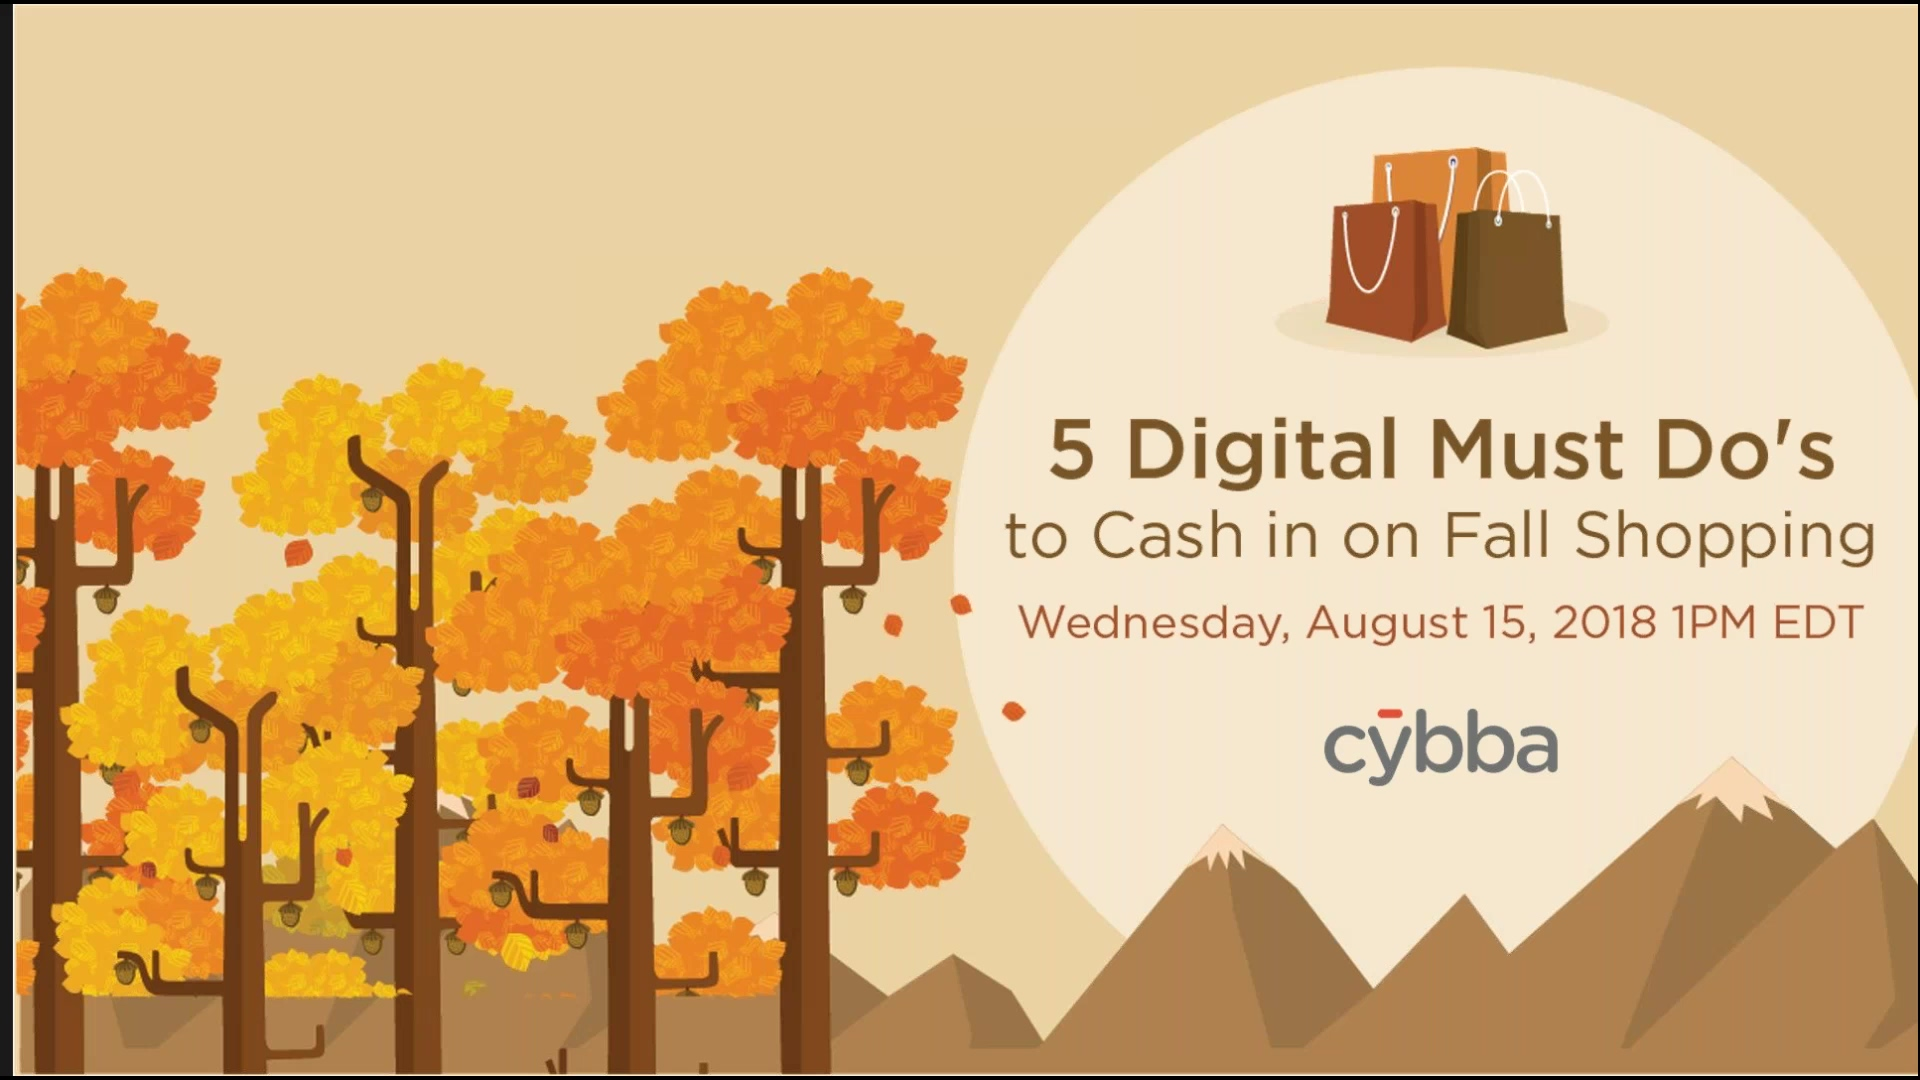 5 Digital Must Do's to Cash in on Fall Shopping